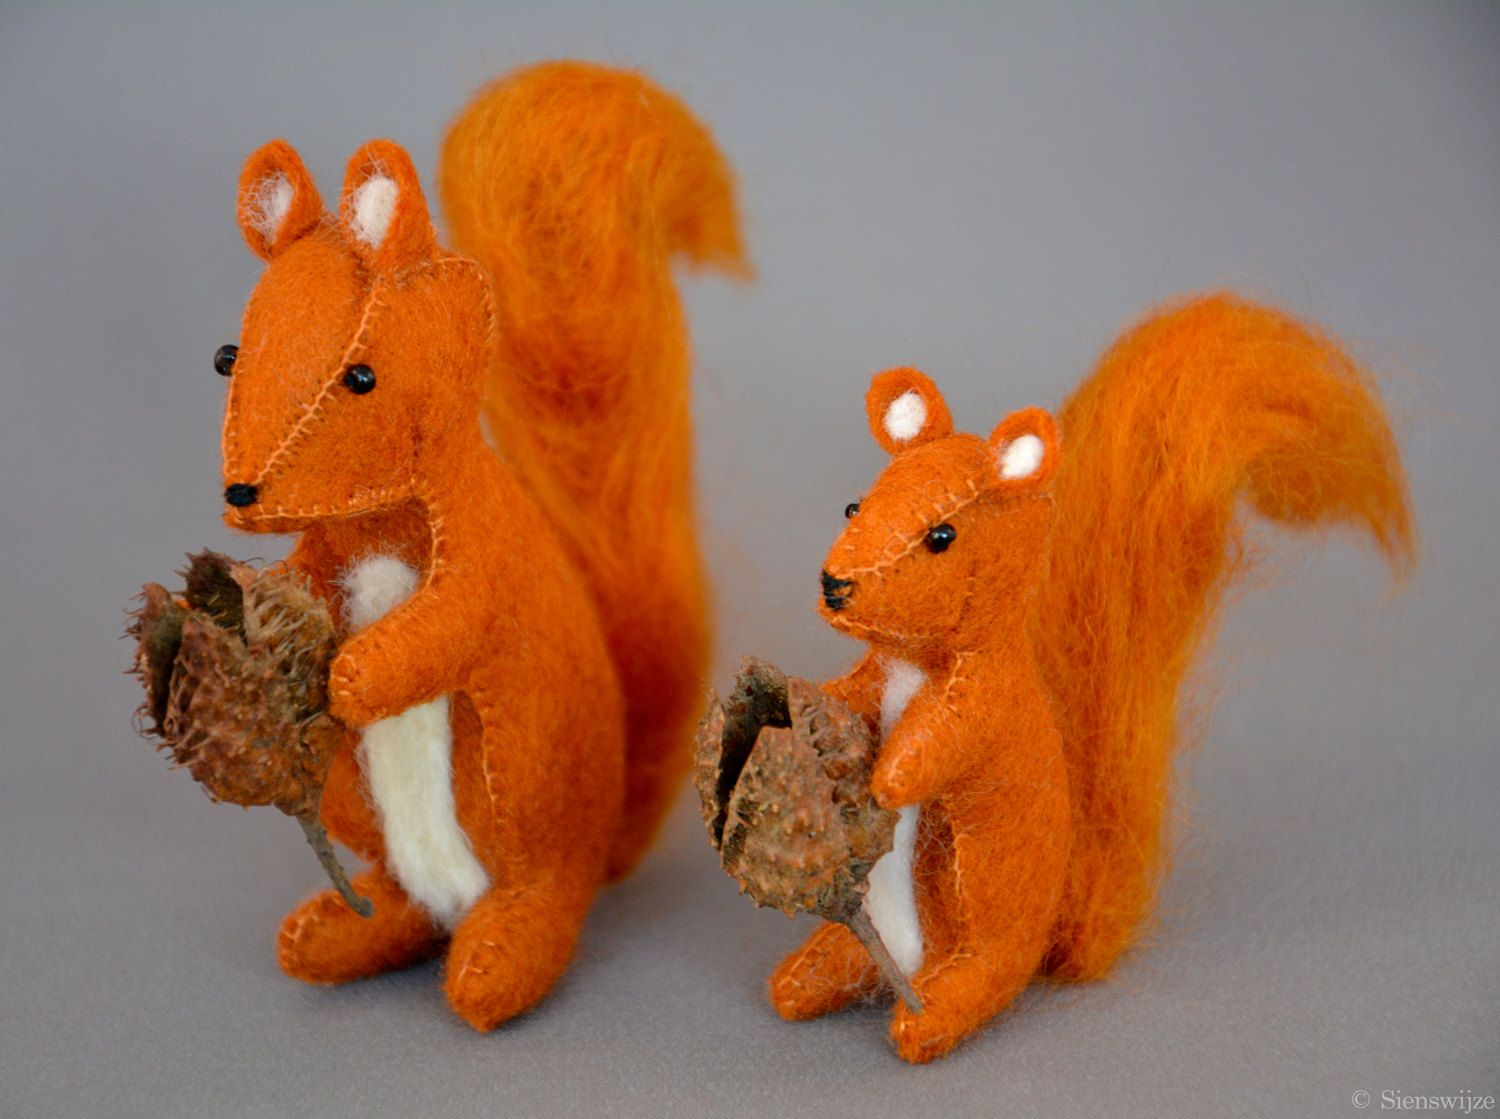 Two lovely little squirrels for on the nature table   #woolfelt #felt #wool #handmade #waldorf #crafted #naturetable #seasontable #autumn #forest #beechnut #squirrel